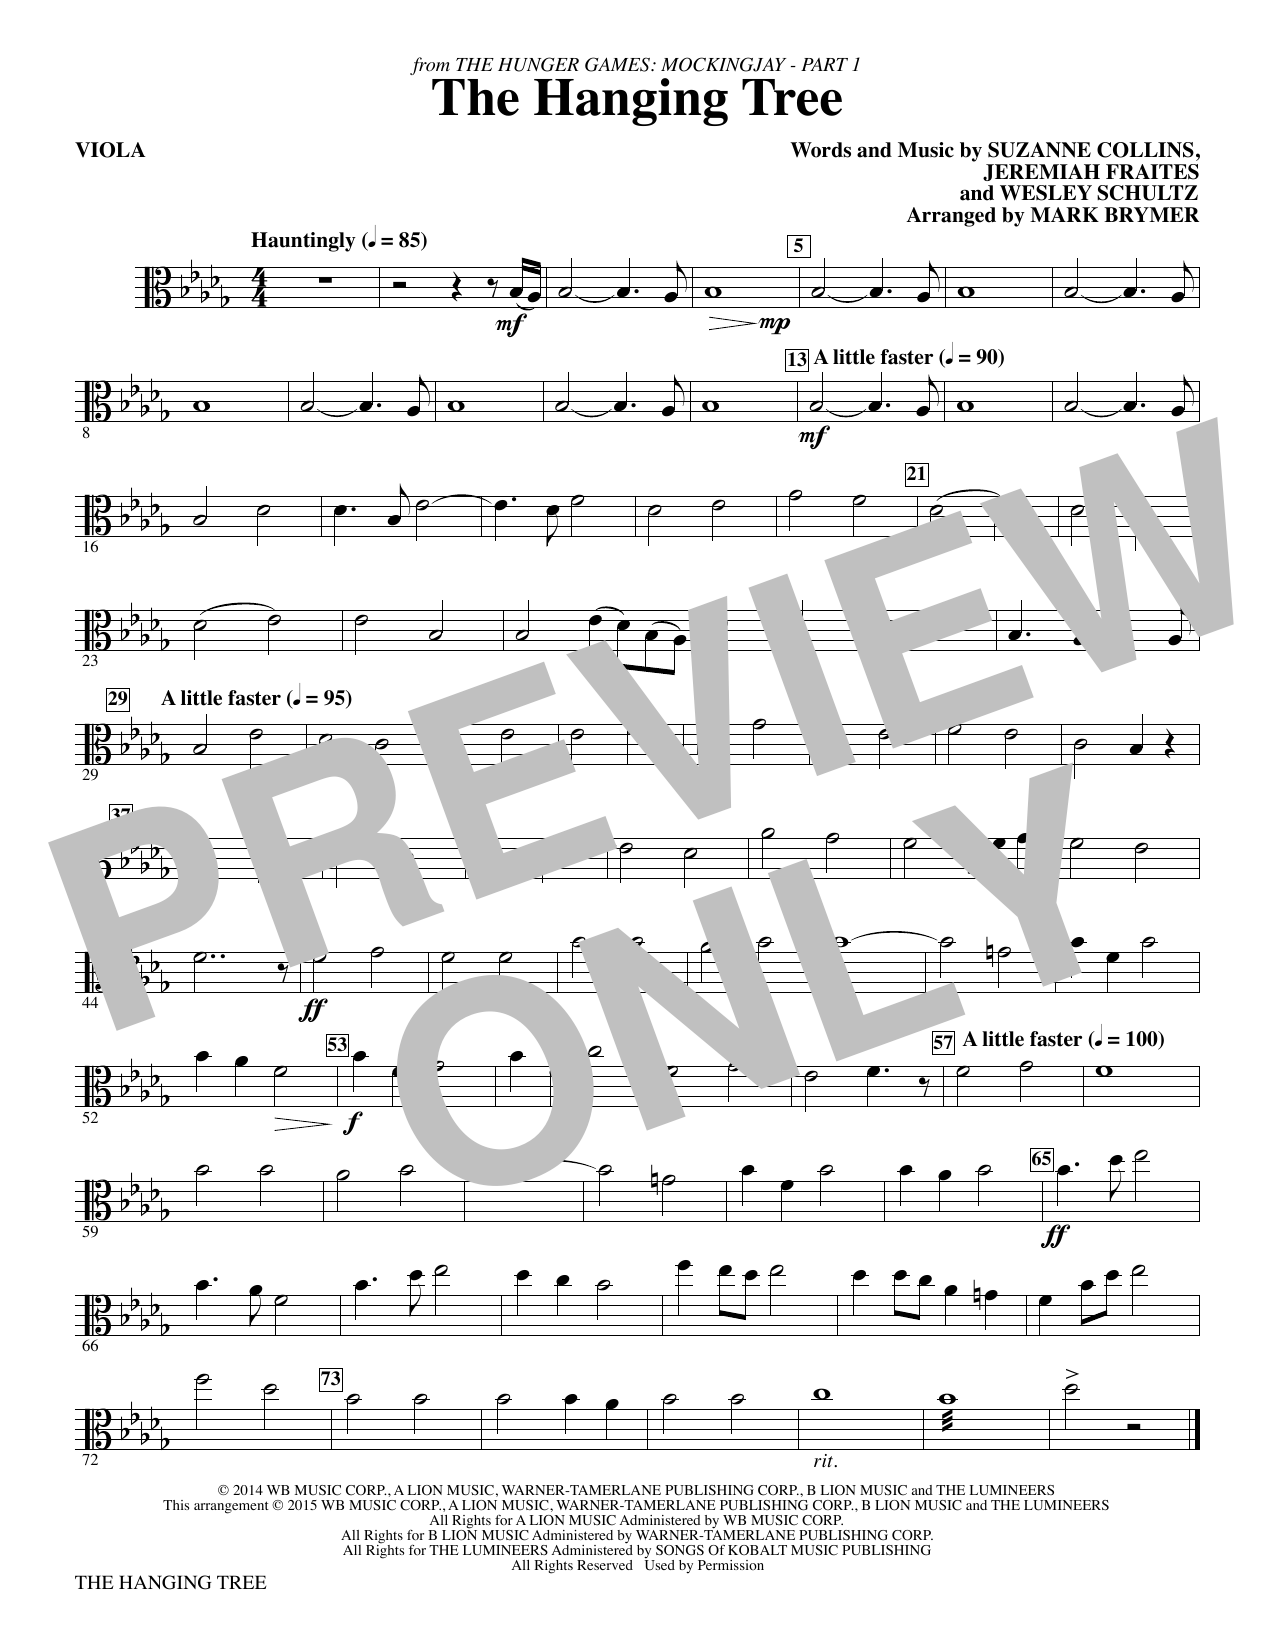 The Hanging Tree (from The Hunger Games: Mockingjay Part I) - Viola Sheet Music